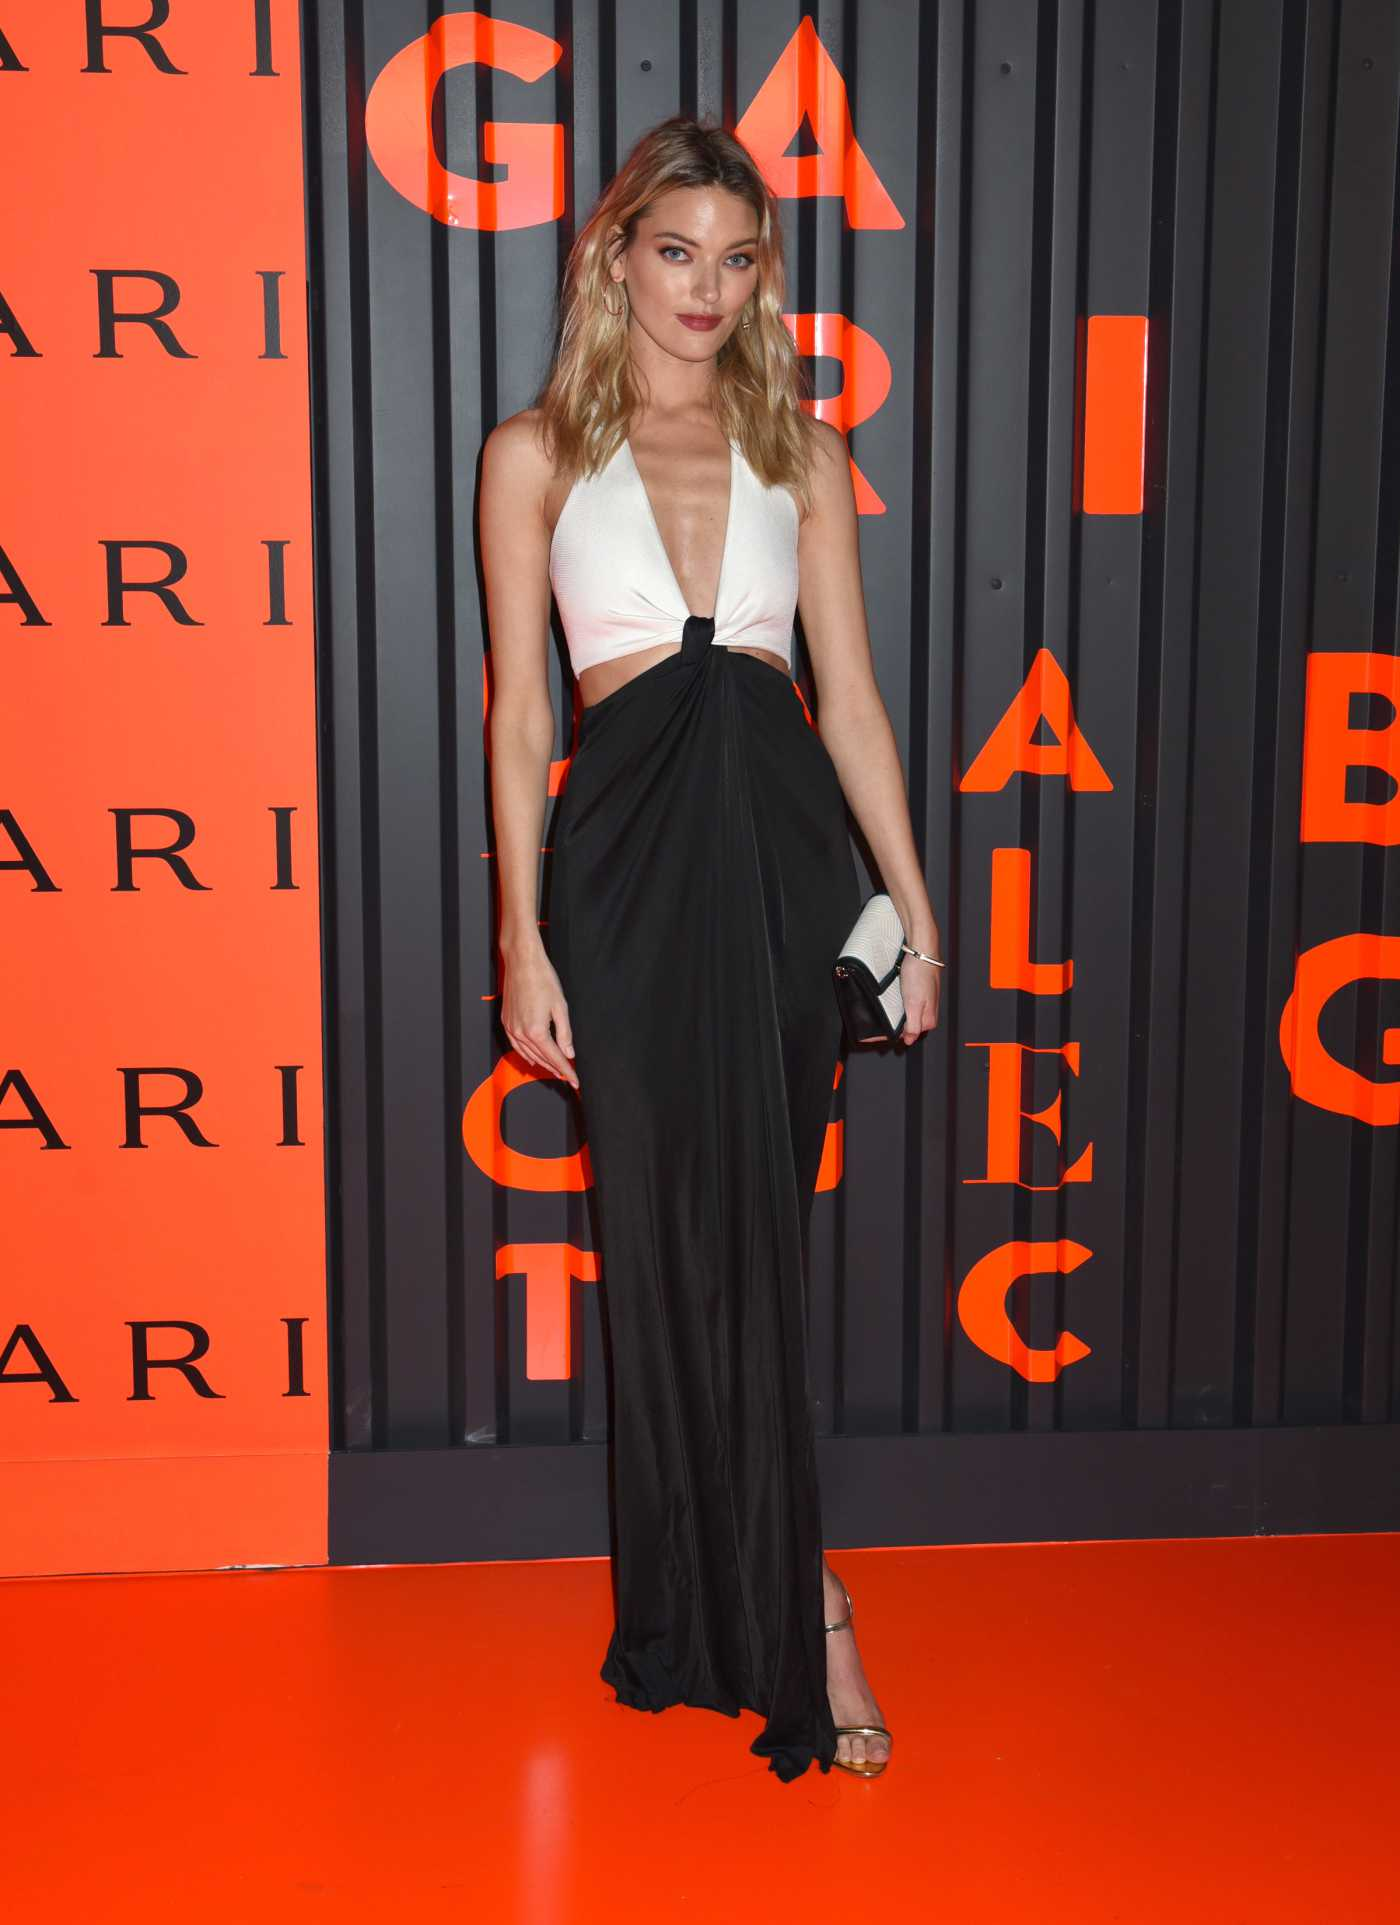 Martha Hunt Attends the Bvlgari Celebrates B.zero1 Rock Collection in Brooklyn, New York 02/06/2020